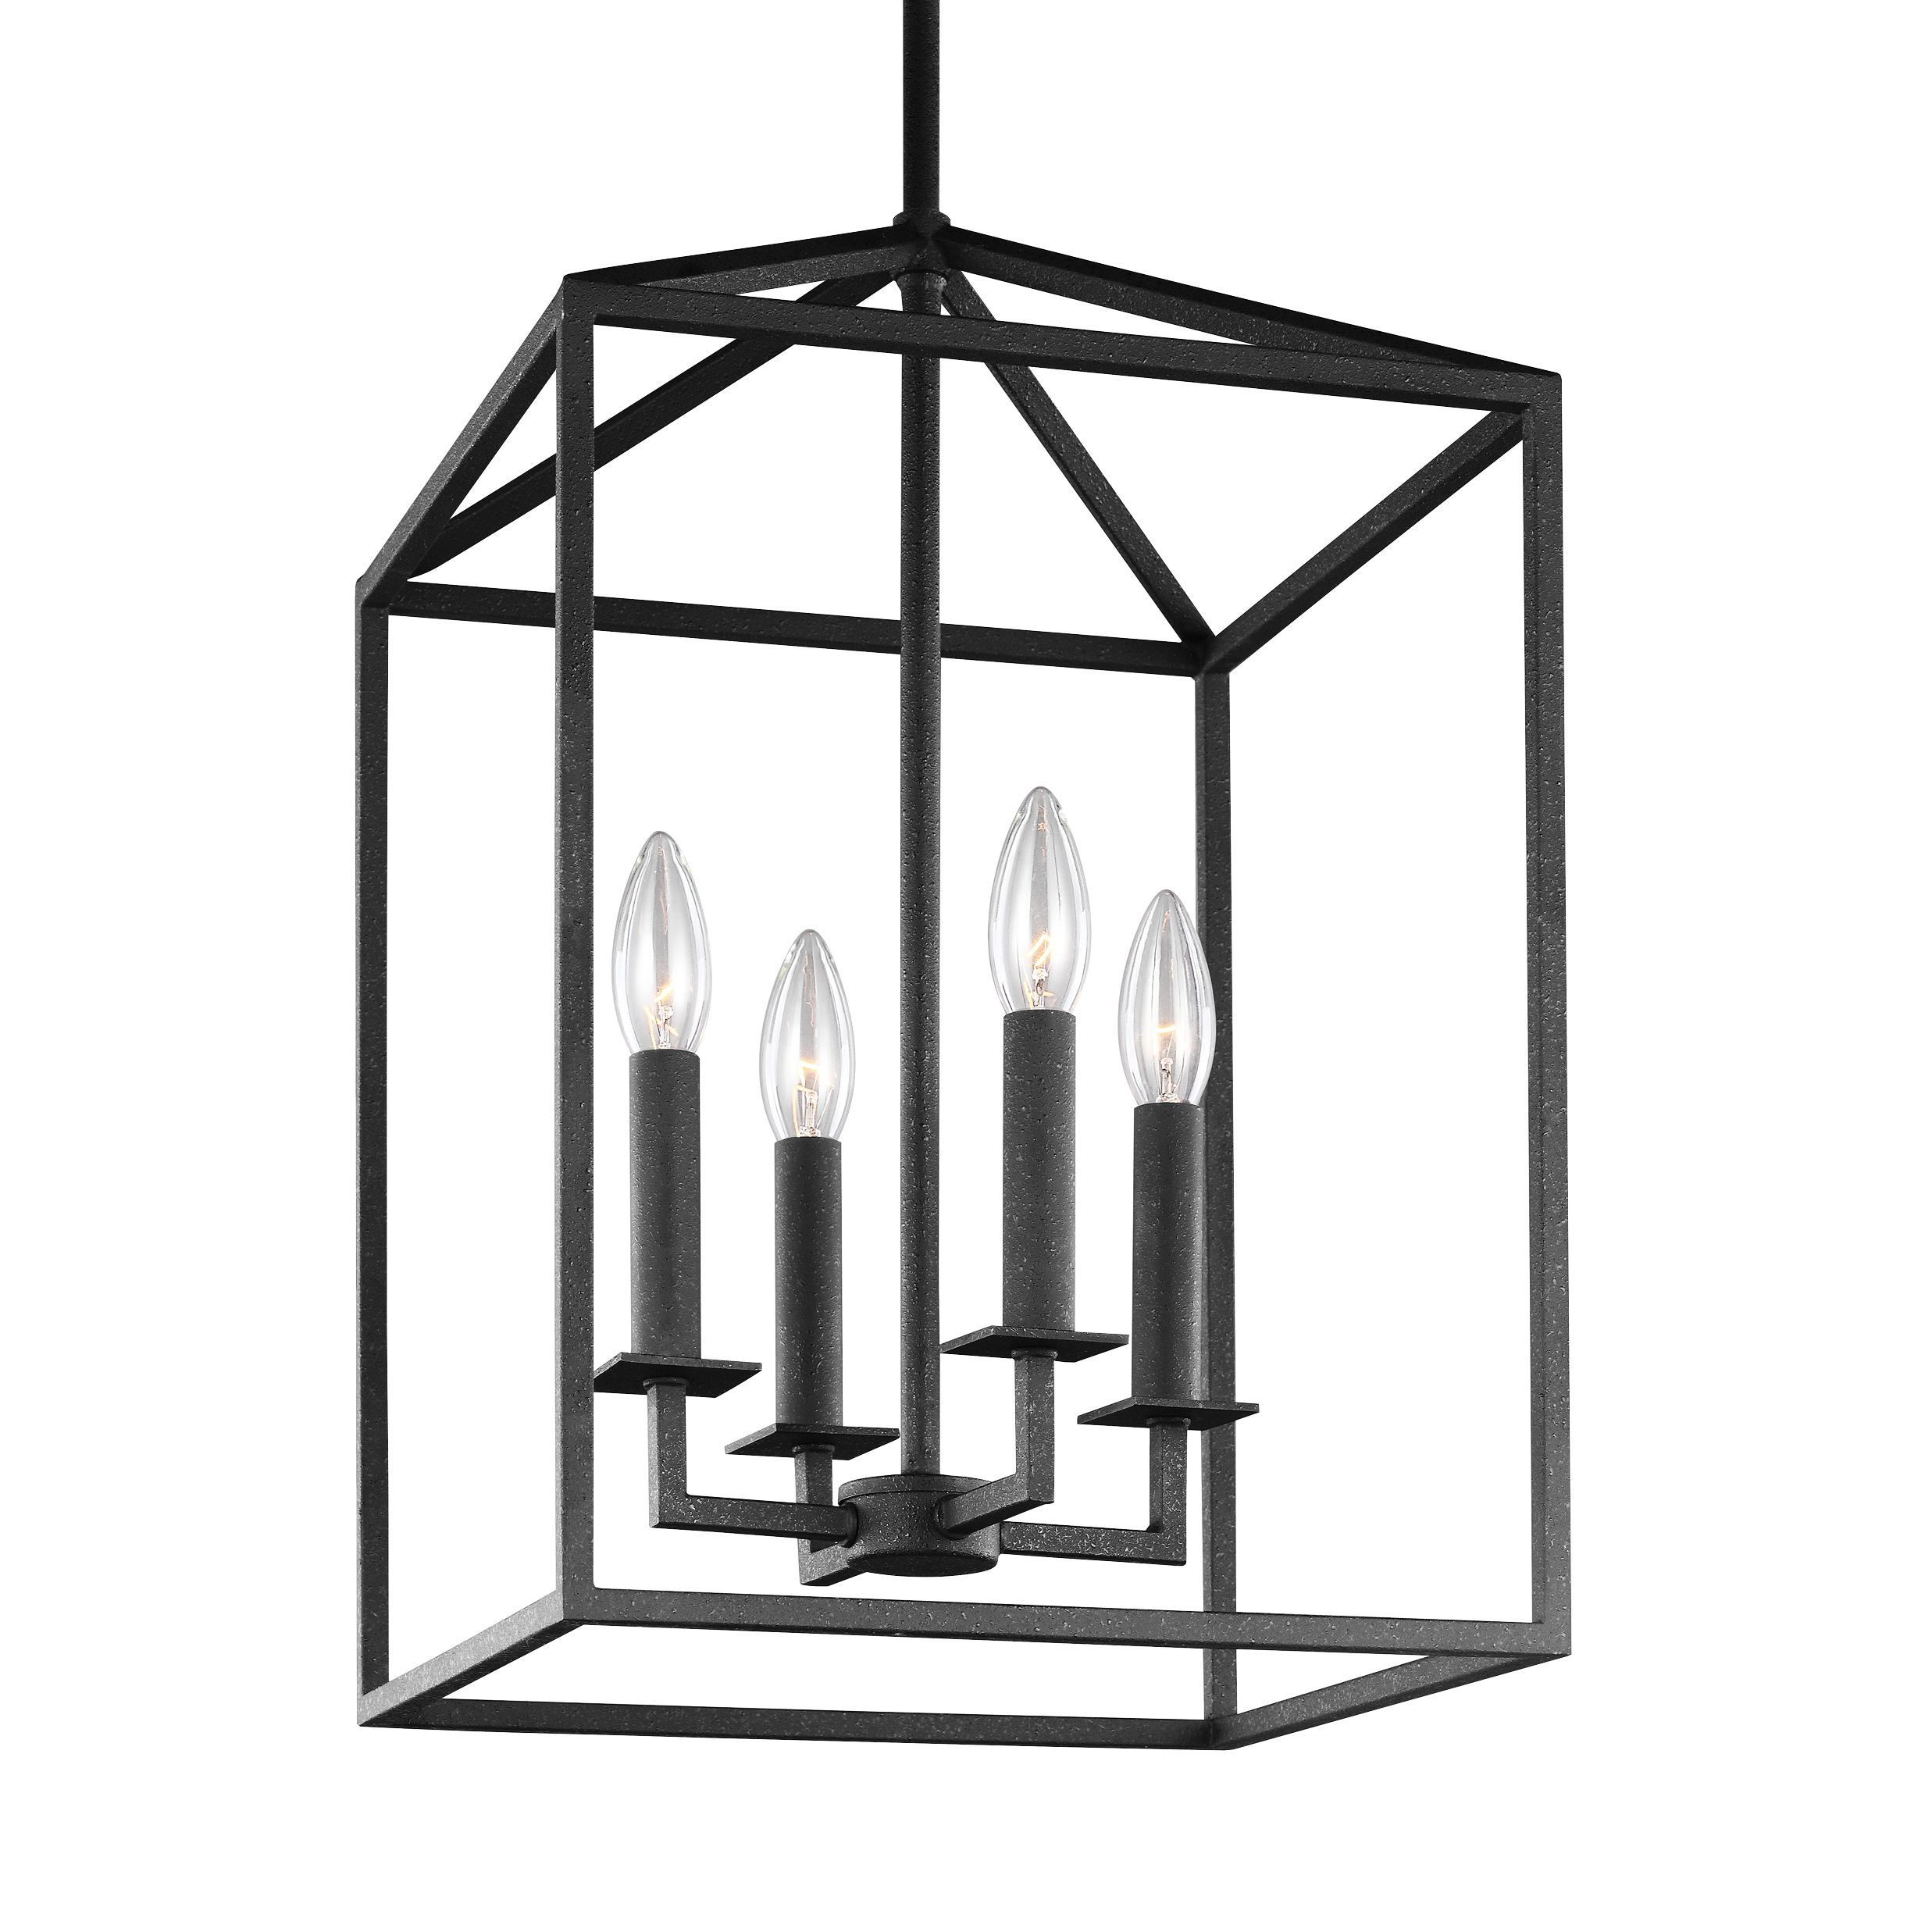 232 The Transitional Perryton Pendant Light Collection By Sea Gull Lighting Is Inspired Stately Carriage Lanterns